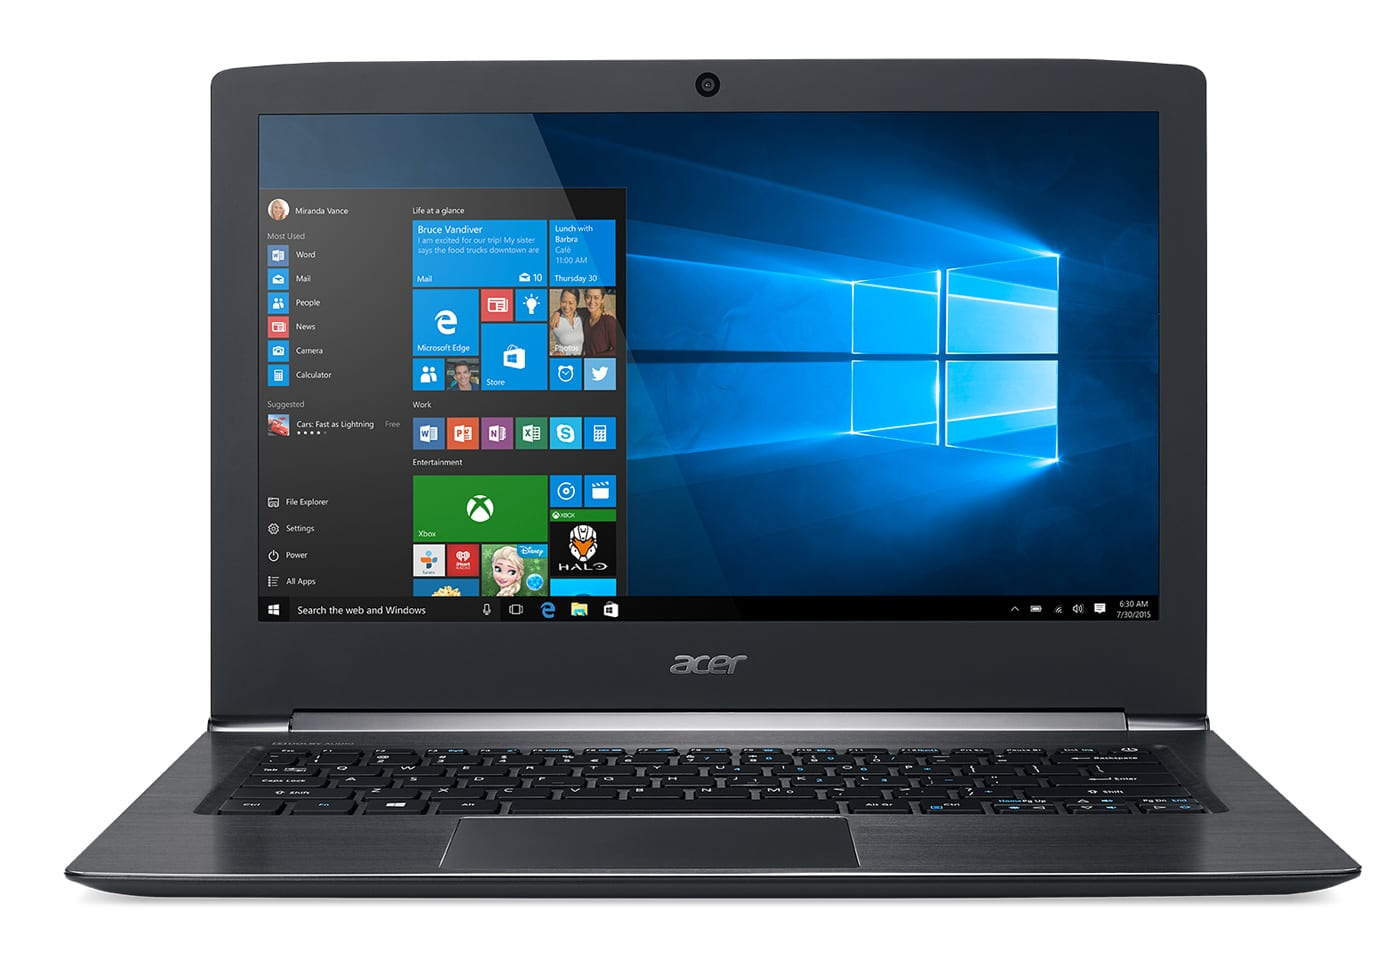 Acer Aspire S5-371-577K, ultrabook 13 pouces SSD256 Full HD IPS i5 (679€)